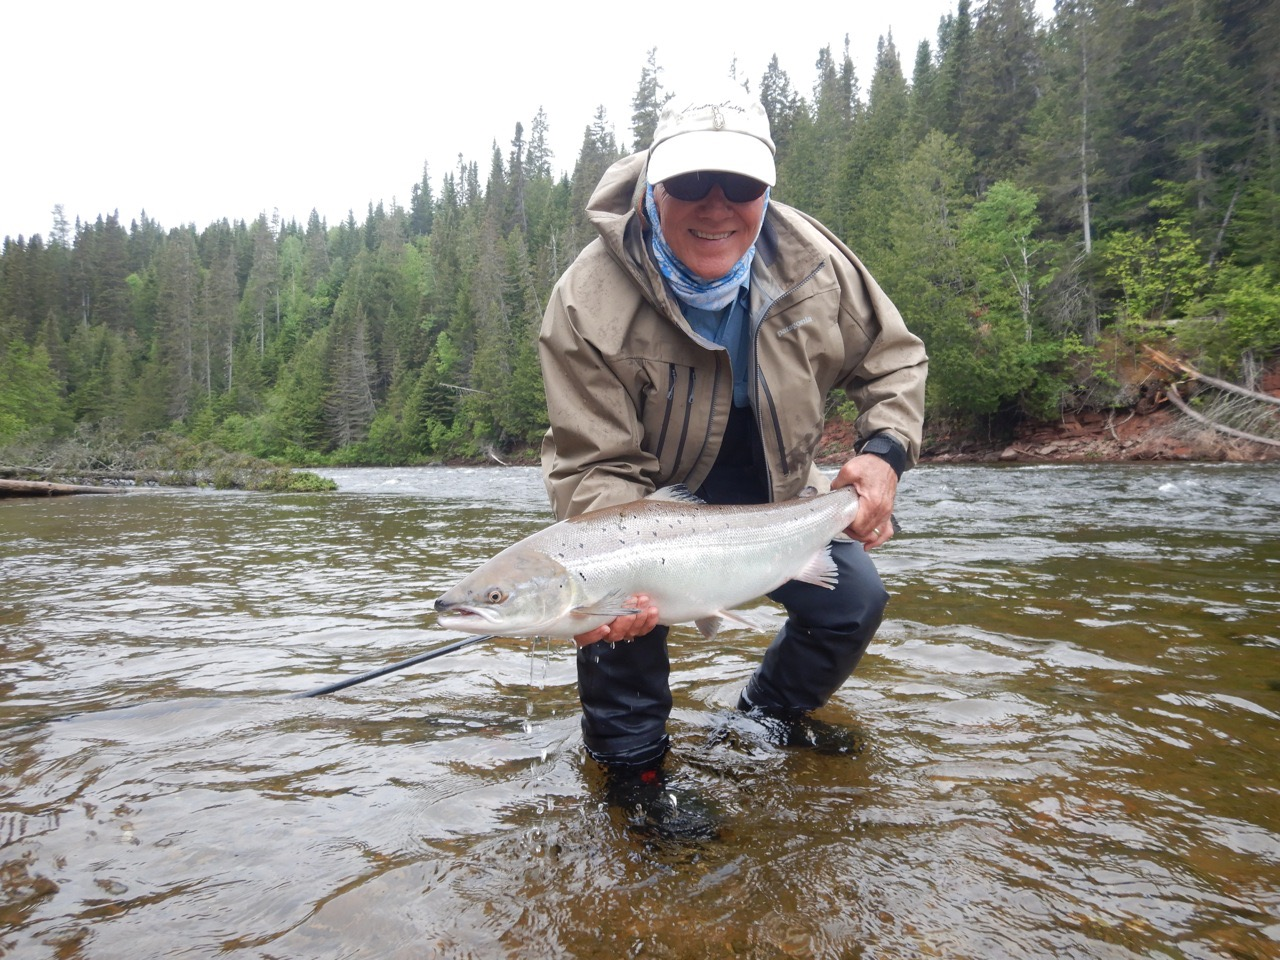 Salmon Lodge regular Curt Hamilton with yet another for the books, great fishing Kurt, well done!